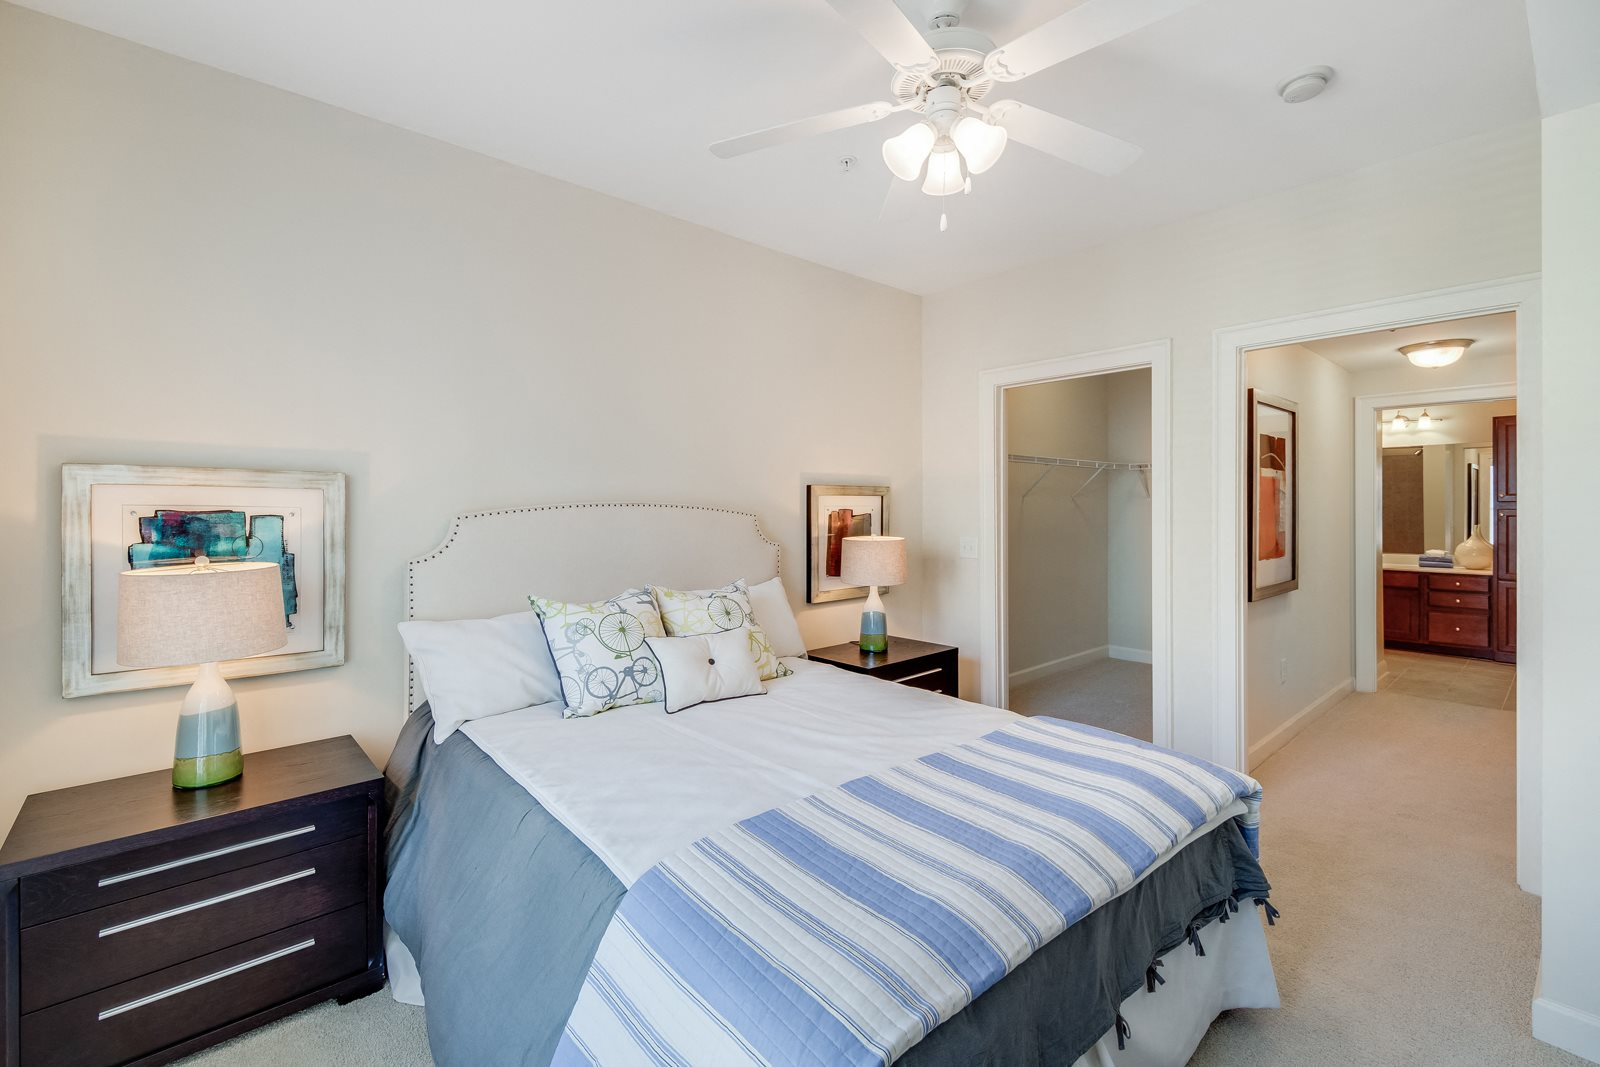 Large Bedrooms with Ceiling Fans at Windsor at Brookhaven, 305 Brookhaven Ave., Atlanta